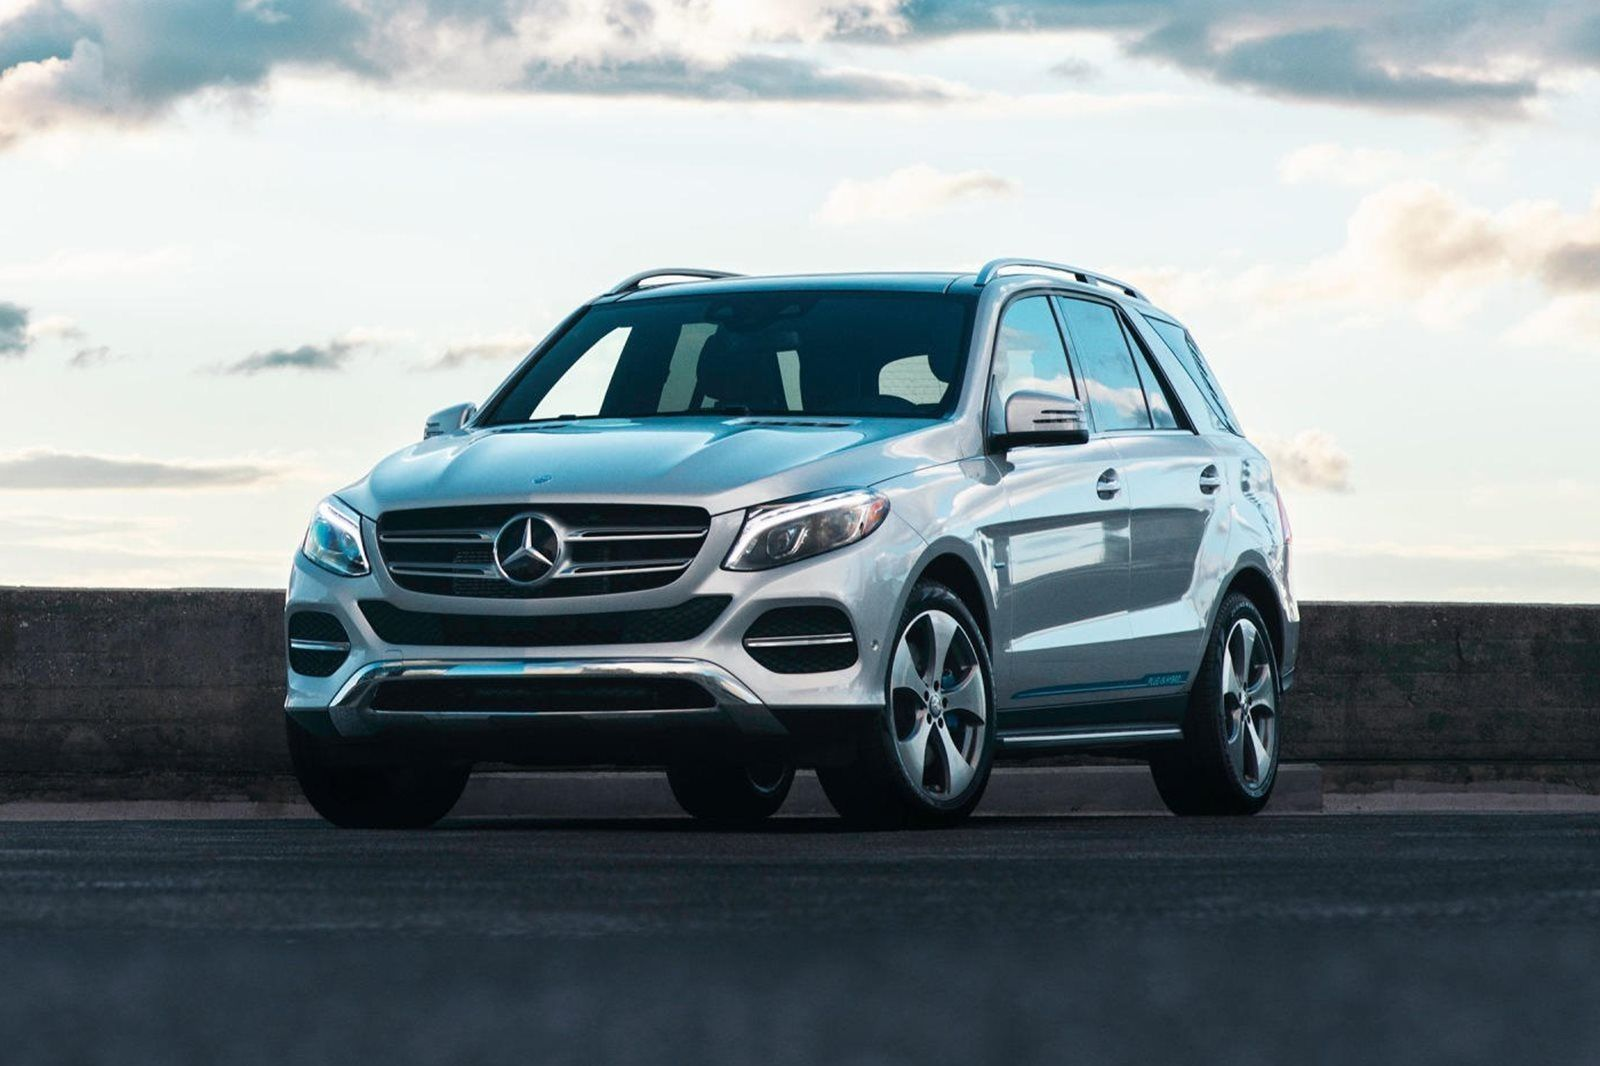 Mercedes Gle Hybrid Reviews Mercedes, Dream cars